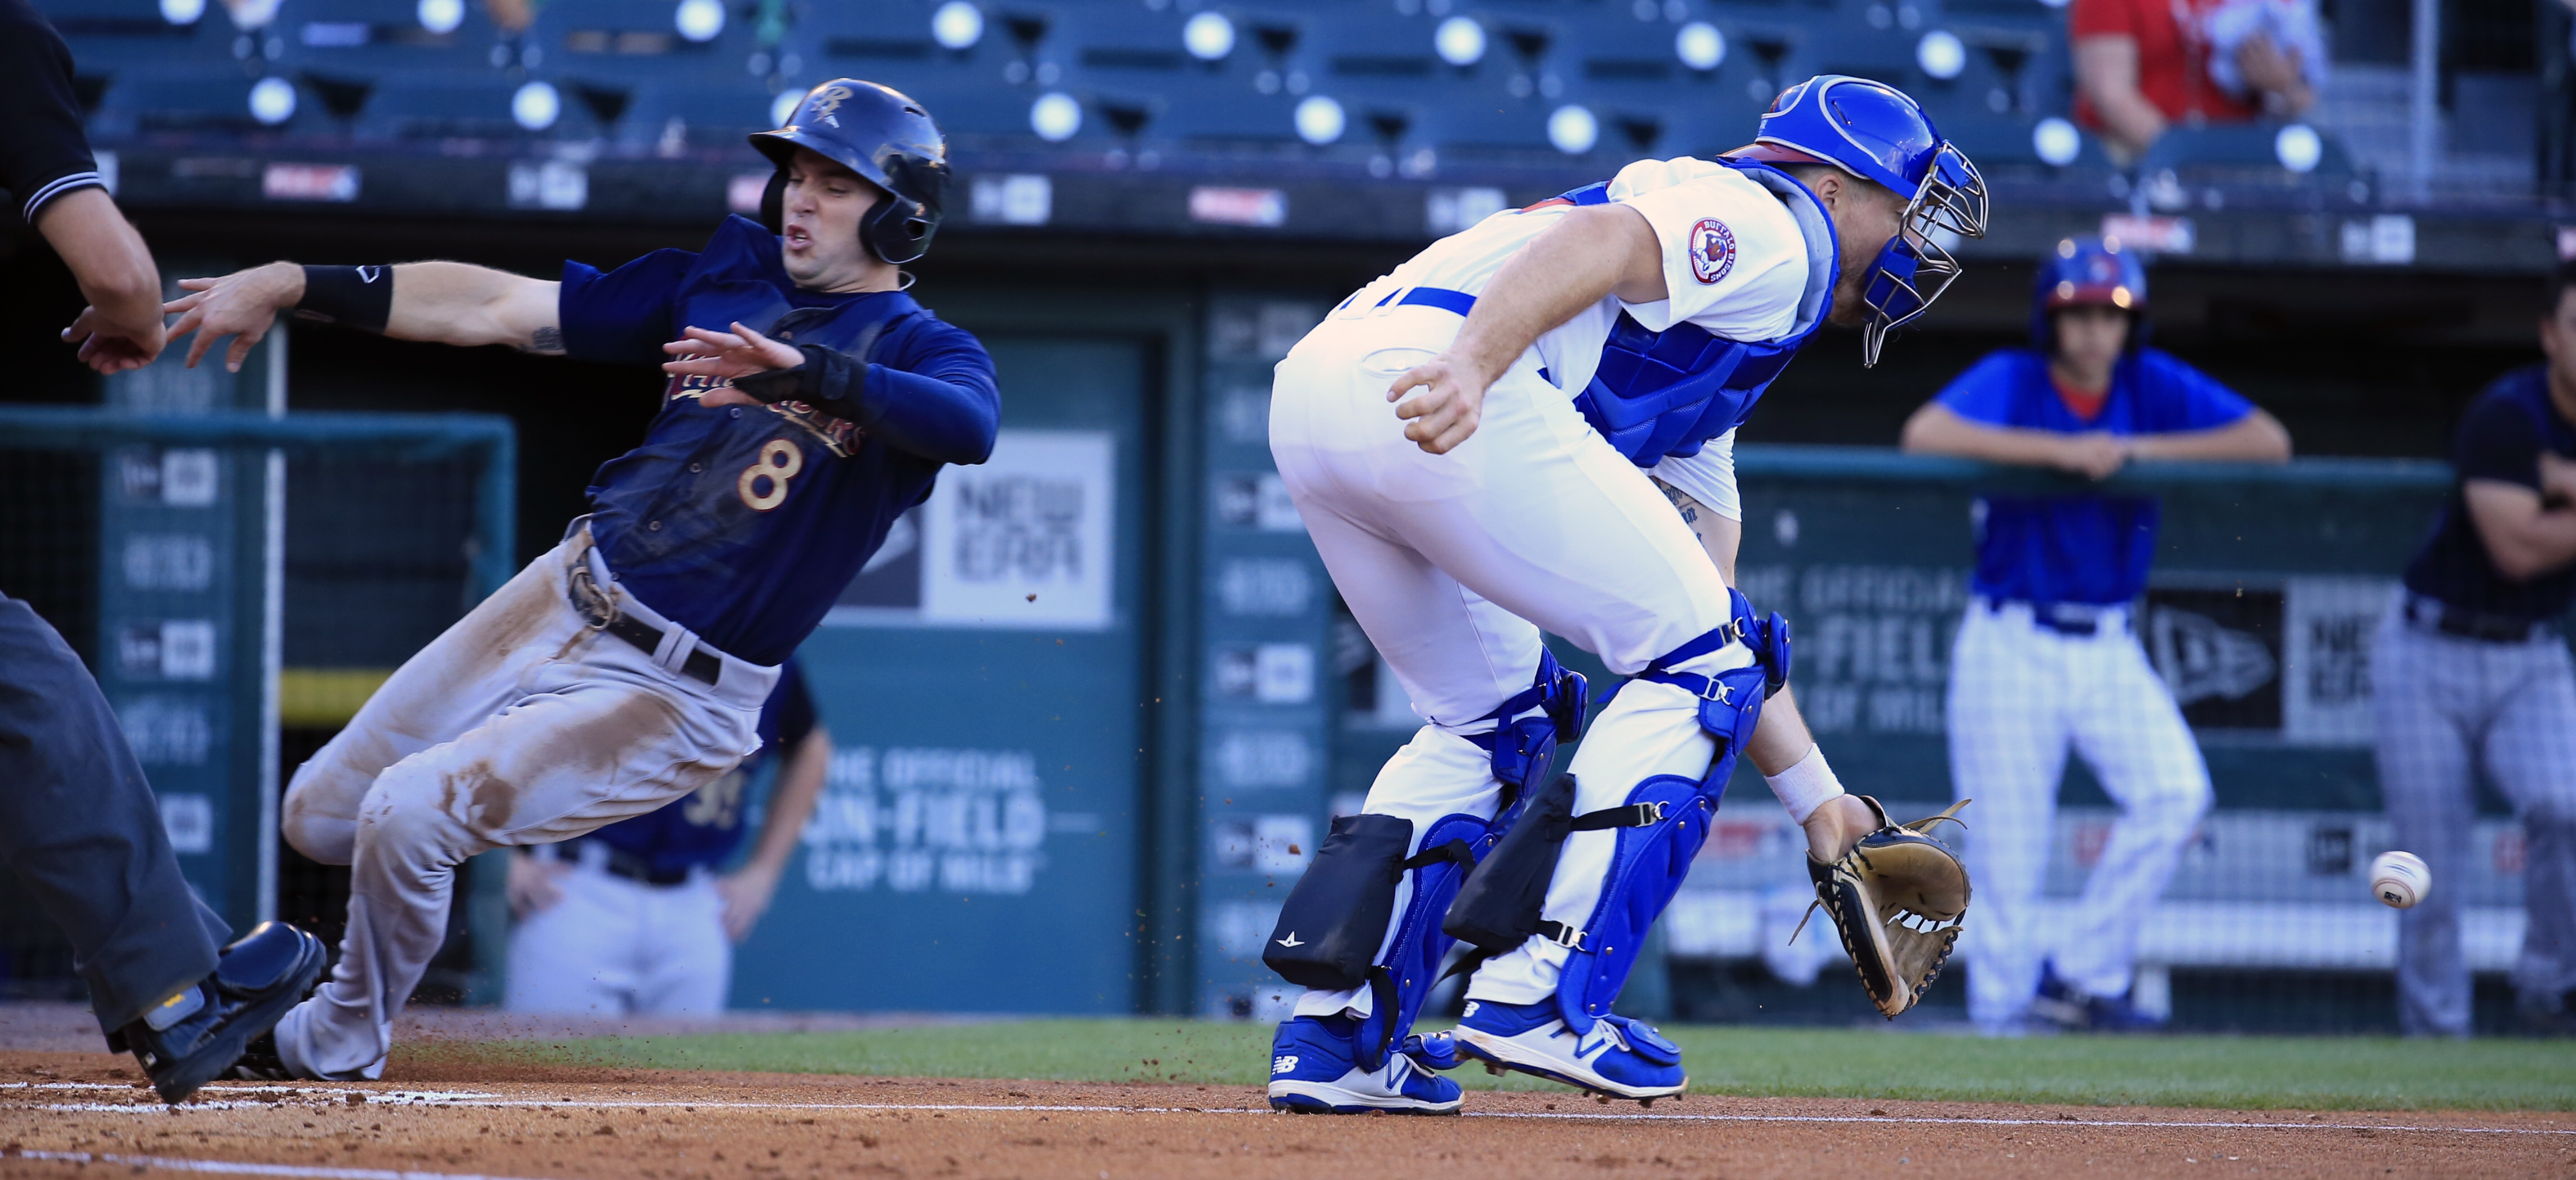 Scranton/Wilkes-Barre's Jake Cave slides past Buffalo Bisons catcher Erik Kratz to score during Thursday's game at Coca-Cola Field.